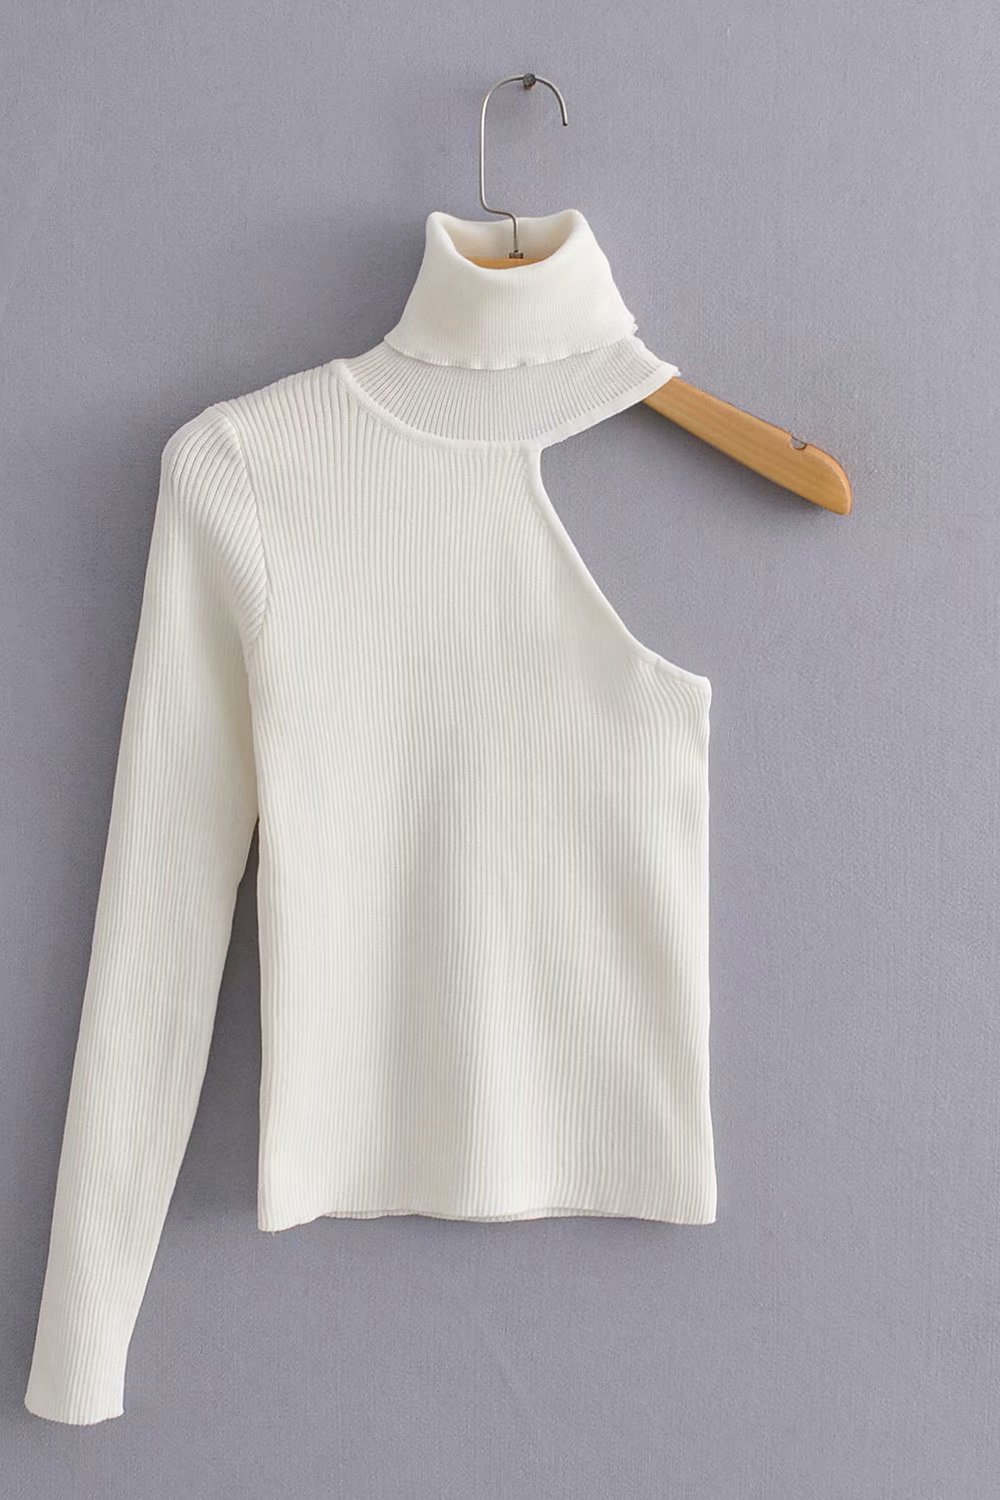 Women Stylish One Shoulder Sweater Turtleneck Stretchy Asymmetrical Design One Sleeve Female Chic Knitted Tops